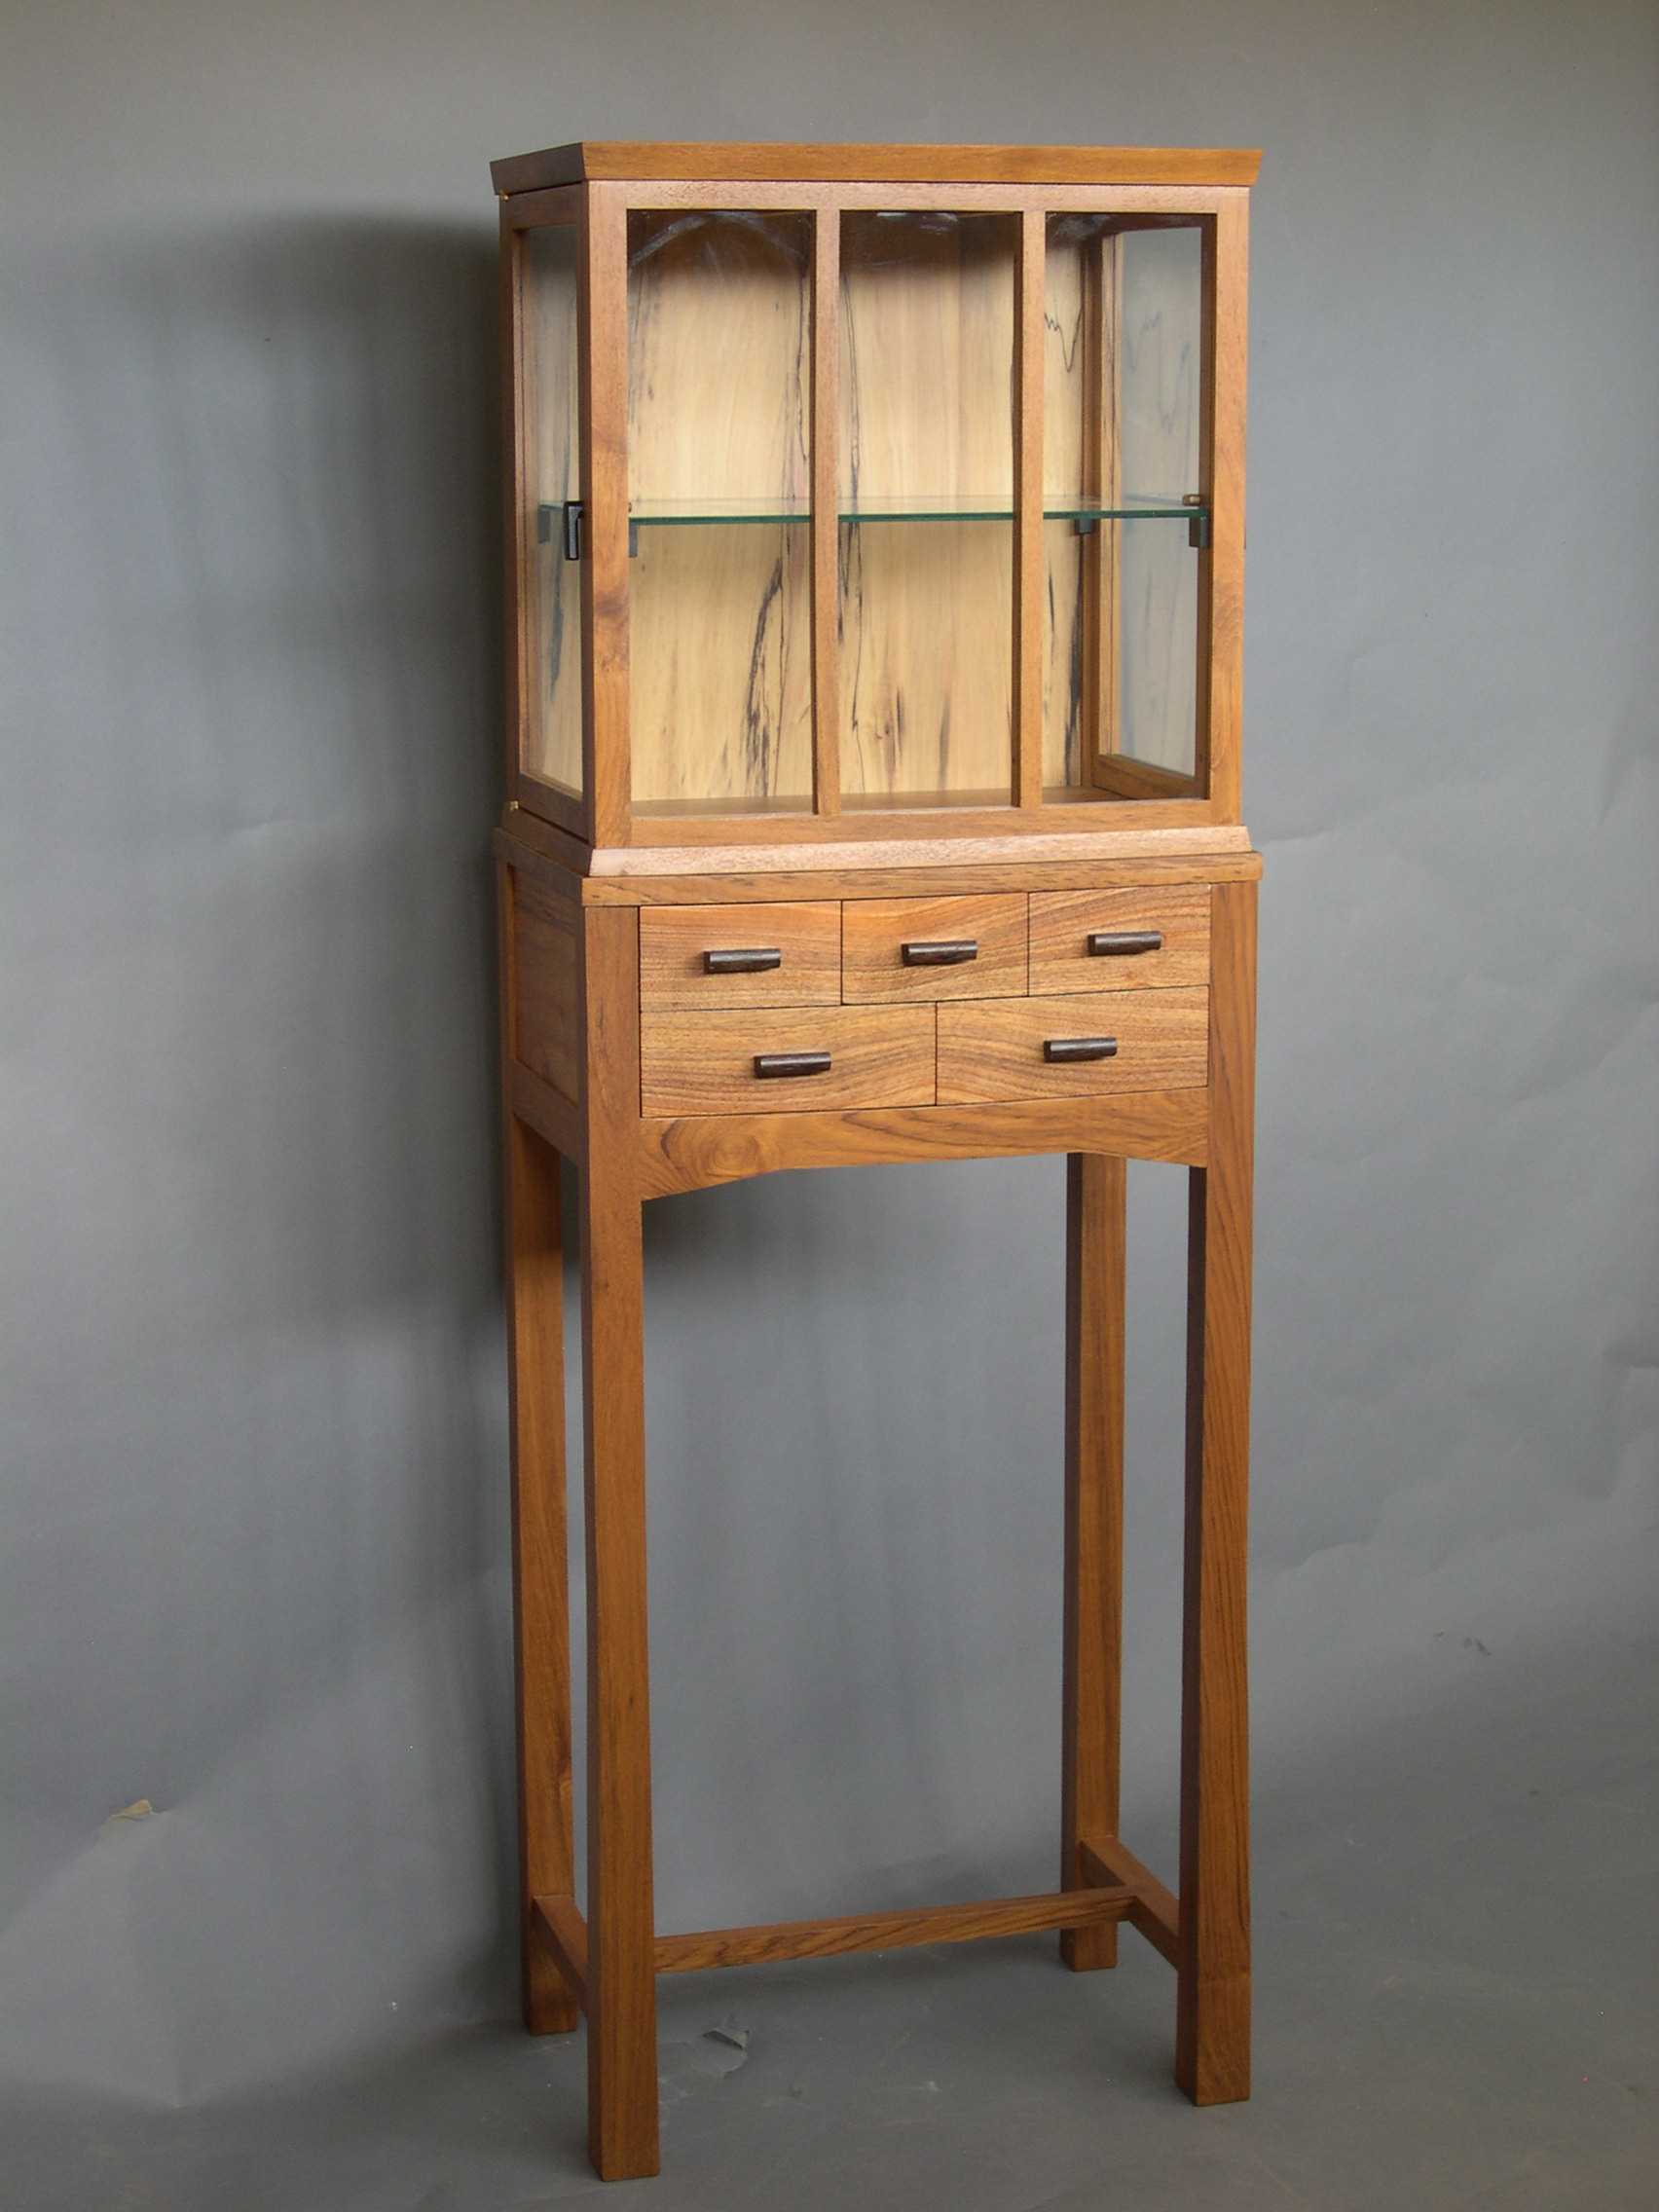 cabinet on stand -